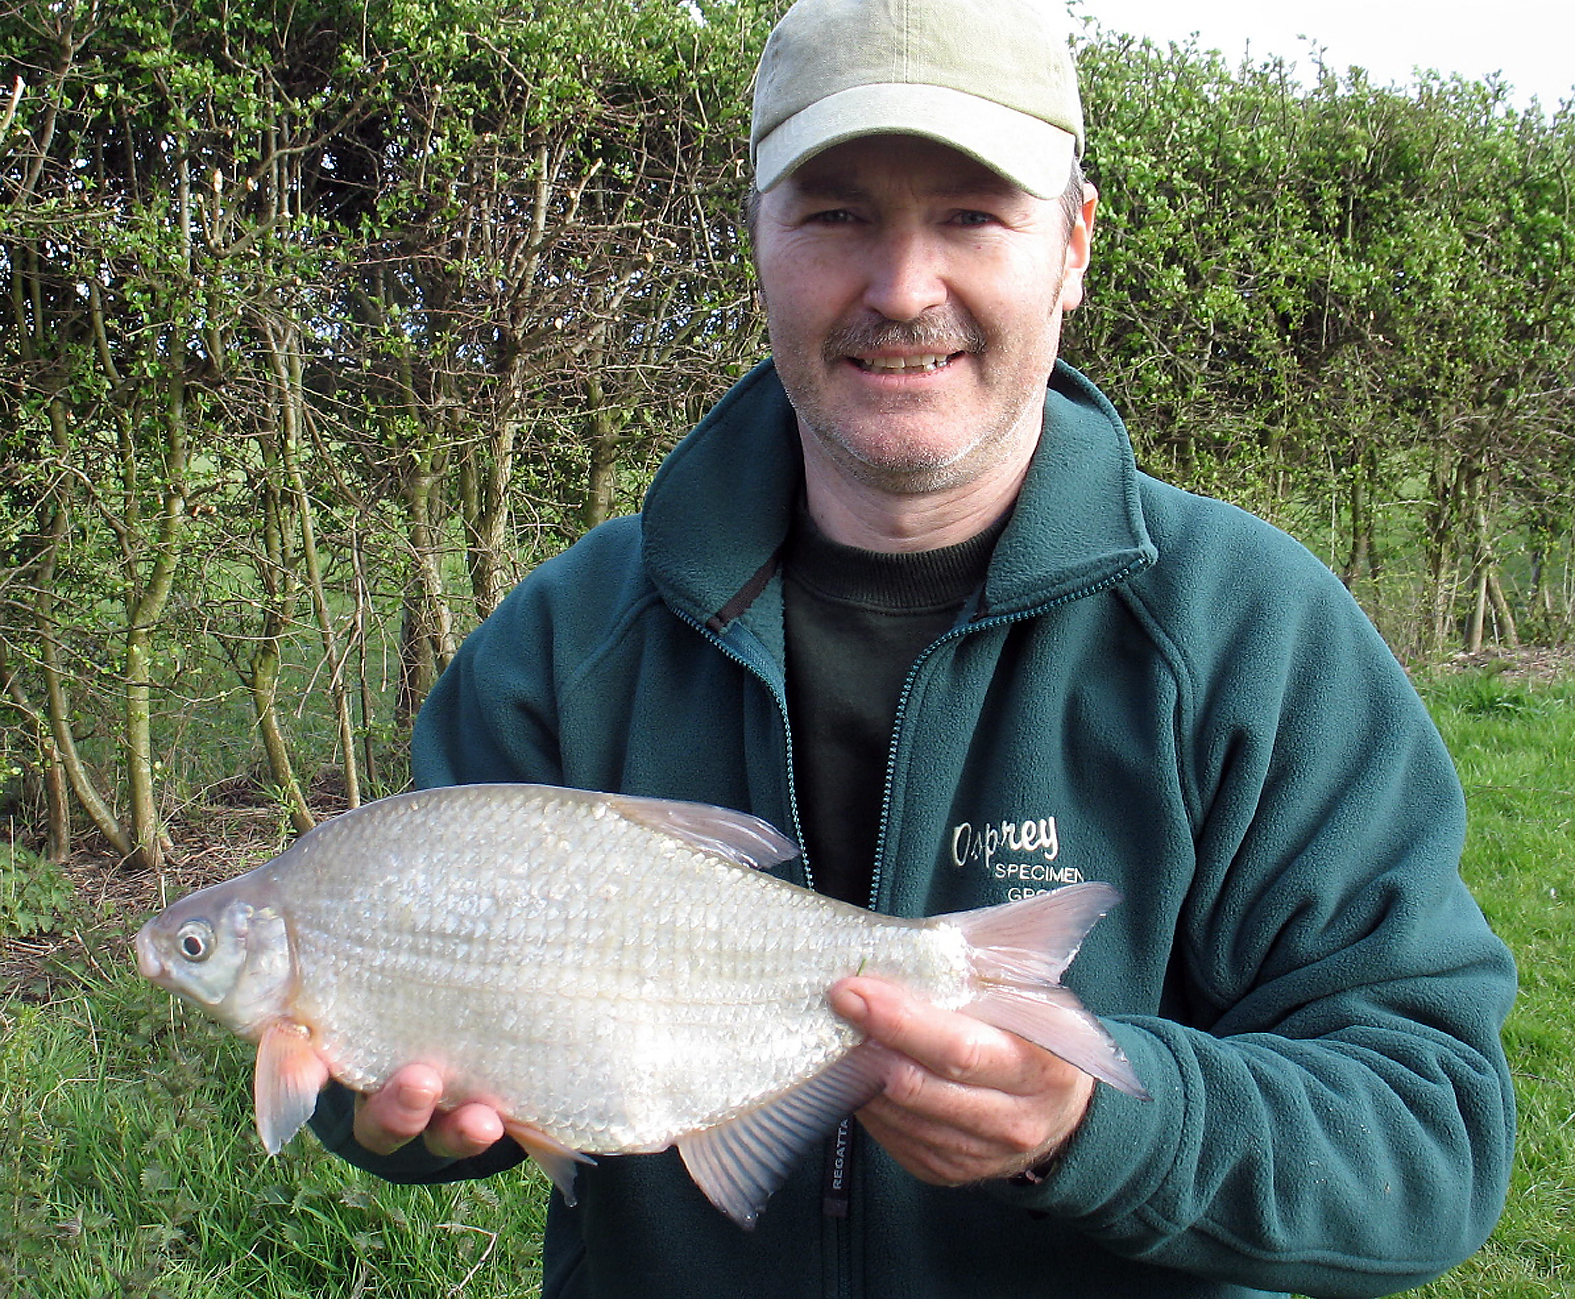 Oh so close! A 2lb 8drm silver bream, which at the time was just over an ounce off the British record